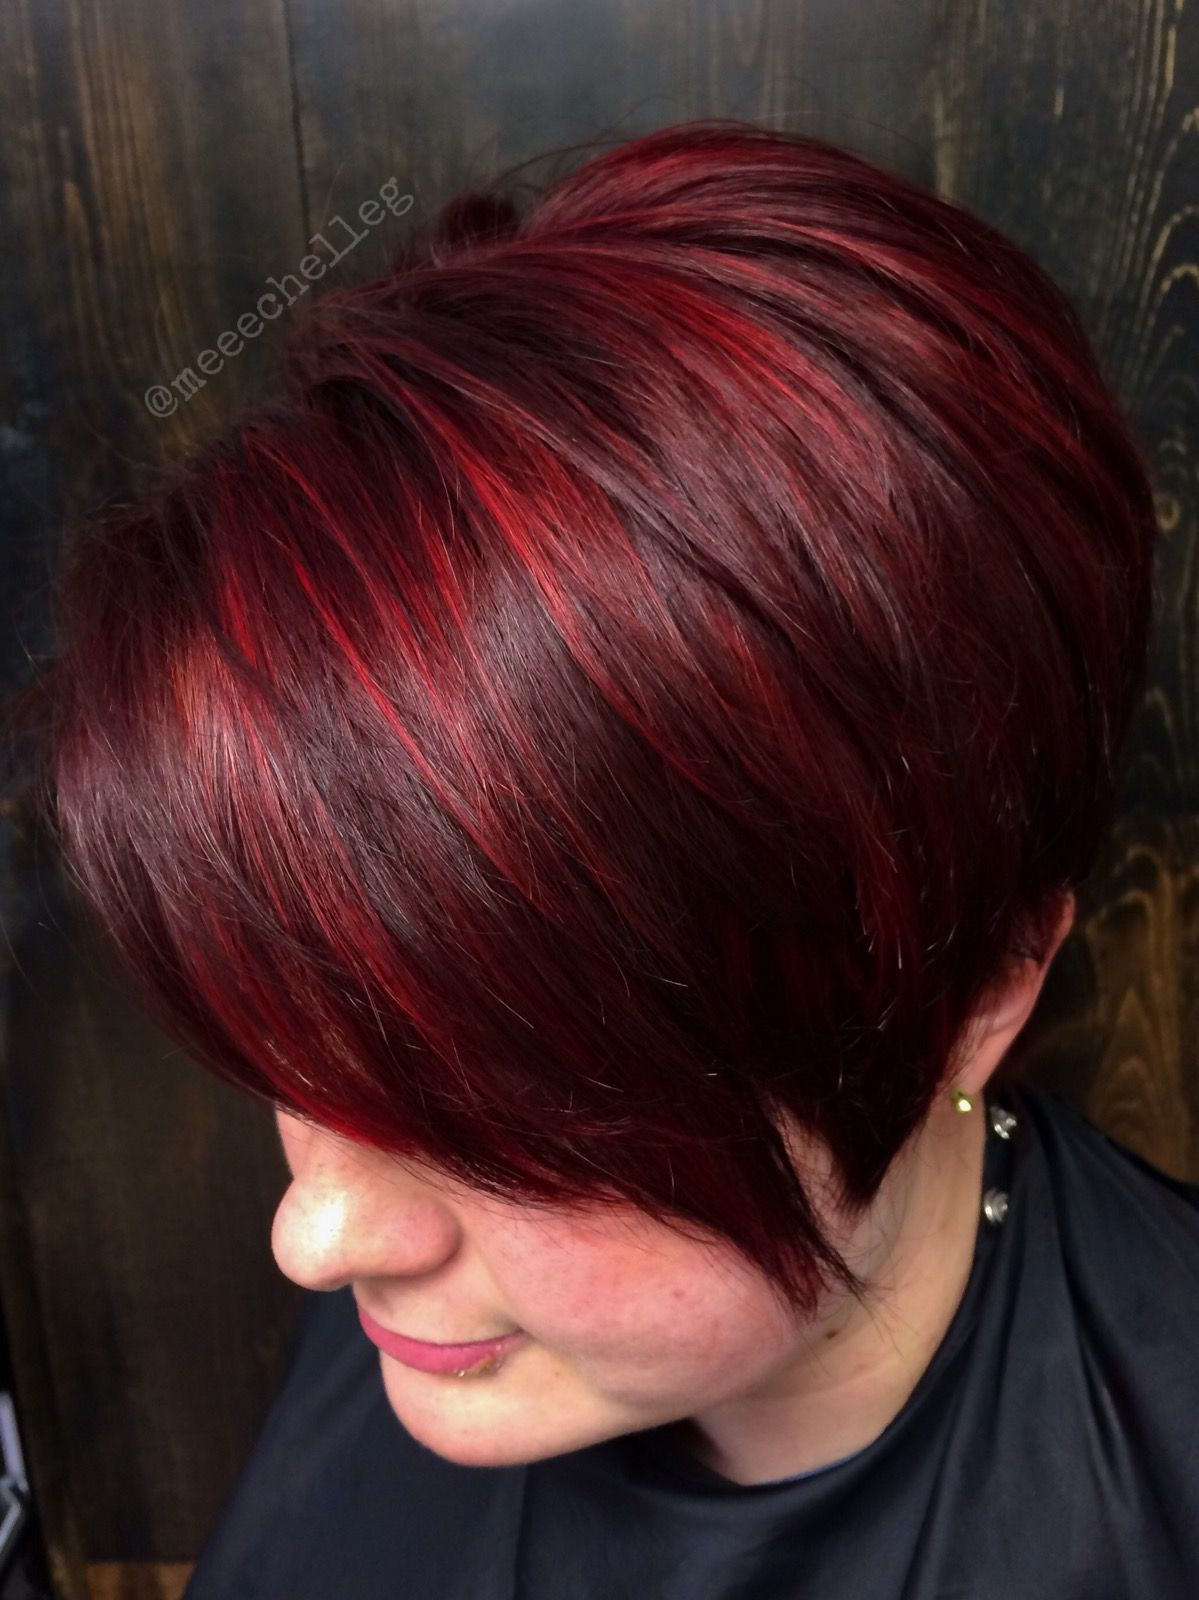 Bright Red Red Highlights Stand Out Red Candy Apple Red Short Hair Pixie Bold Red Vivid G Short Red Hair Red Hair With Highlights Short Hair Highlights